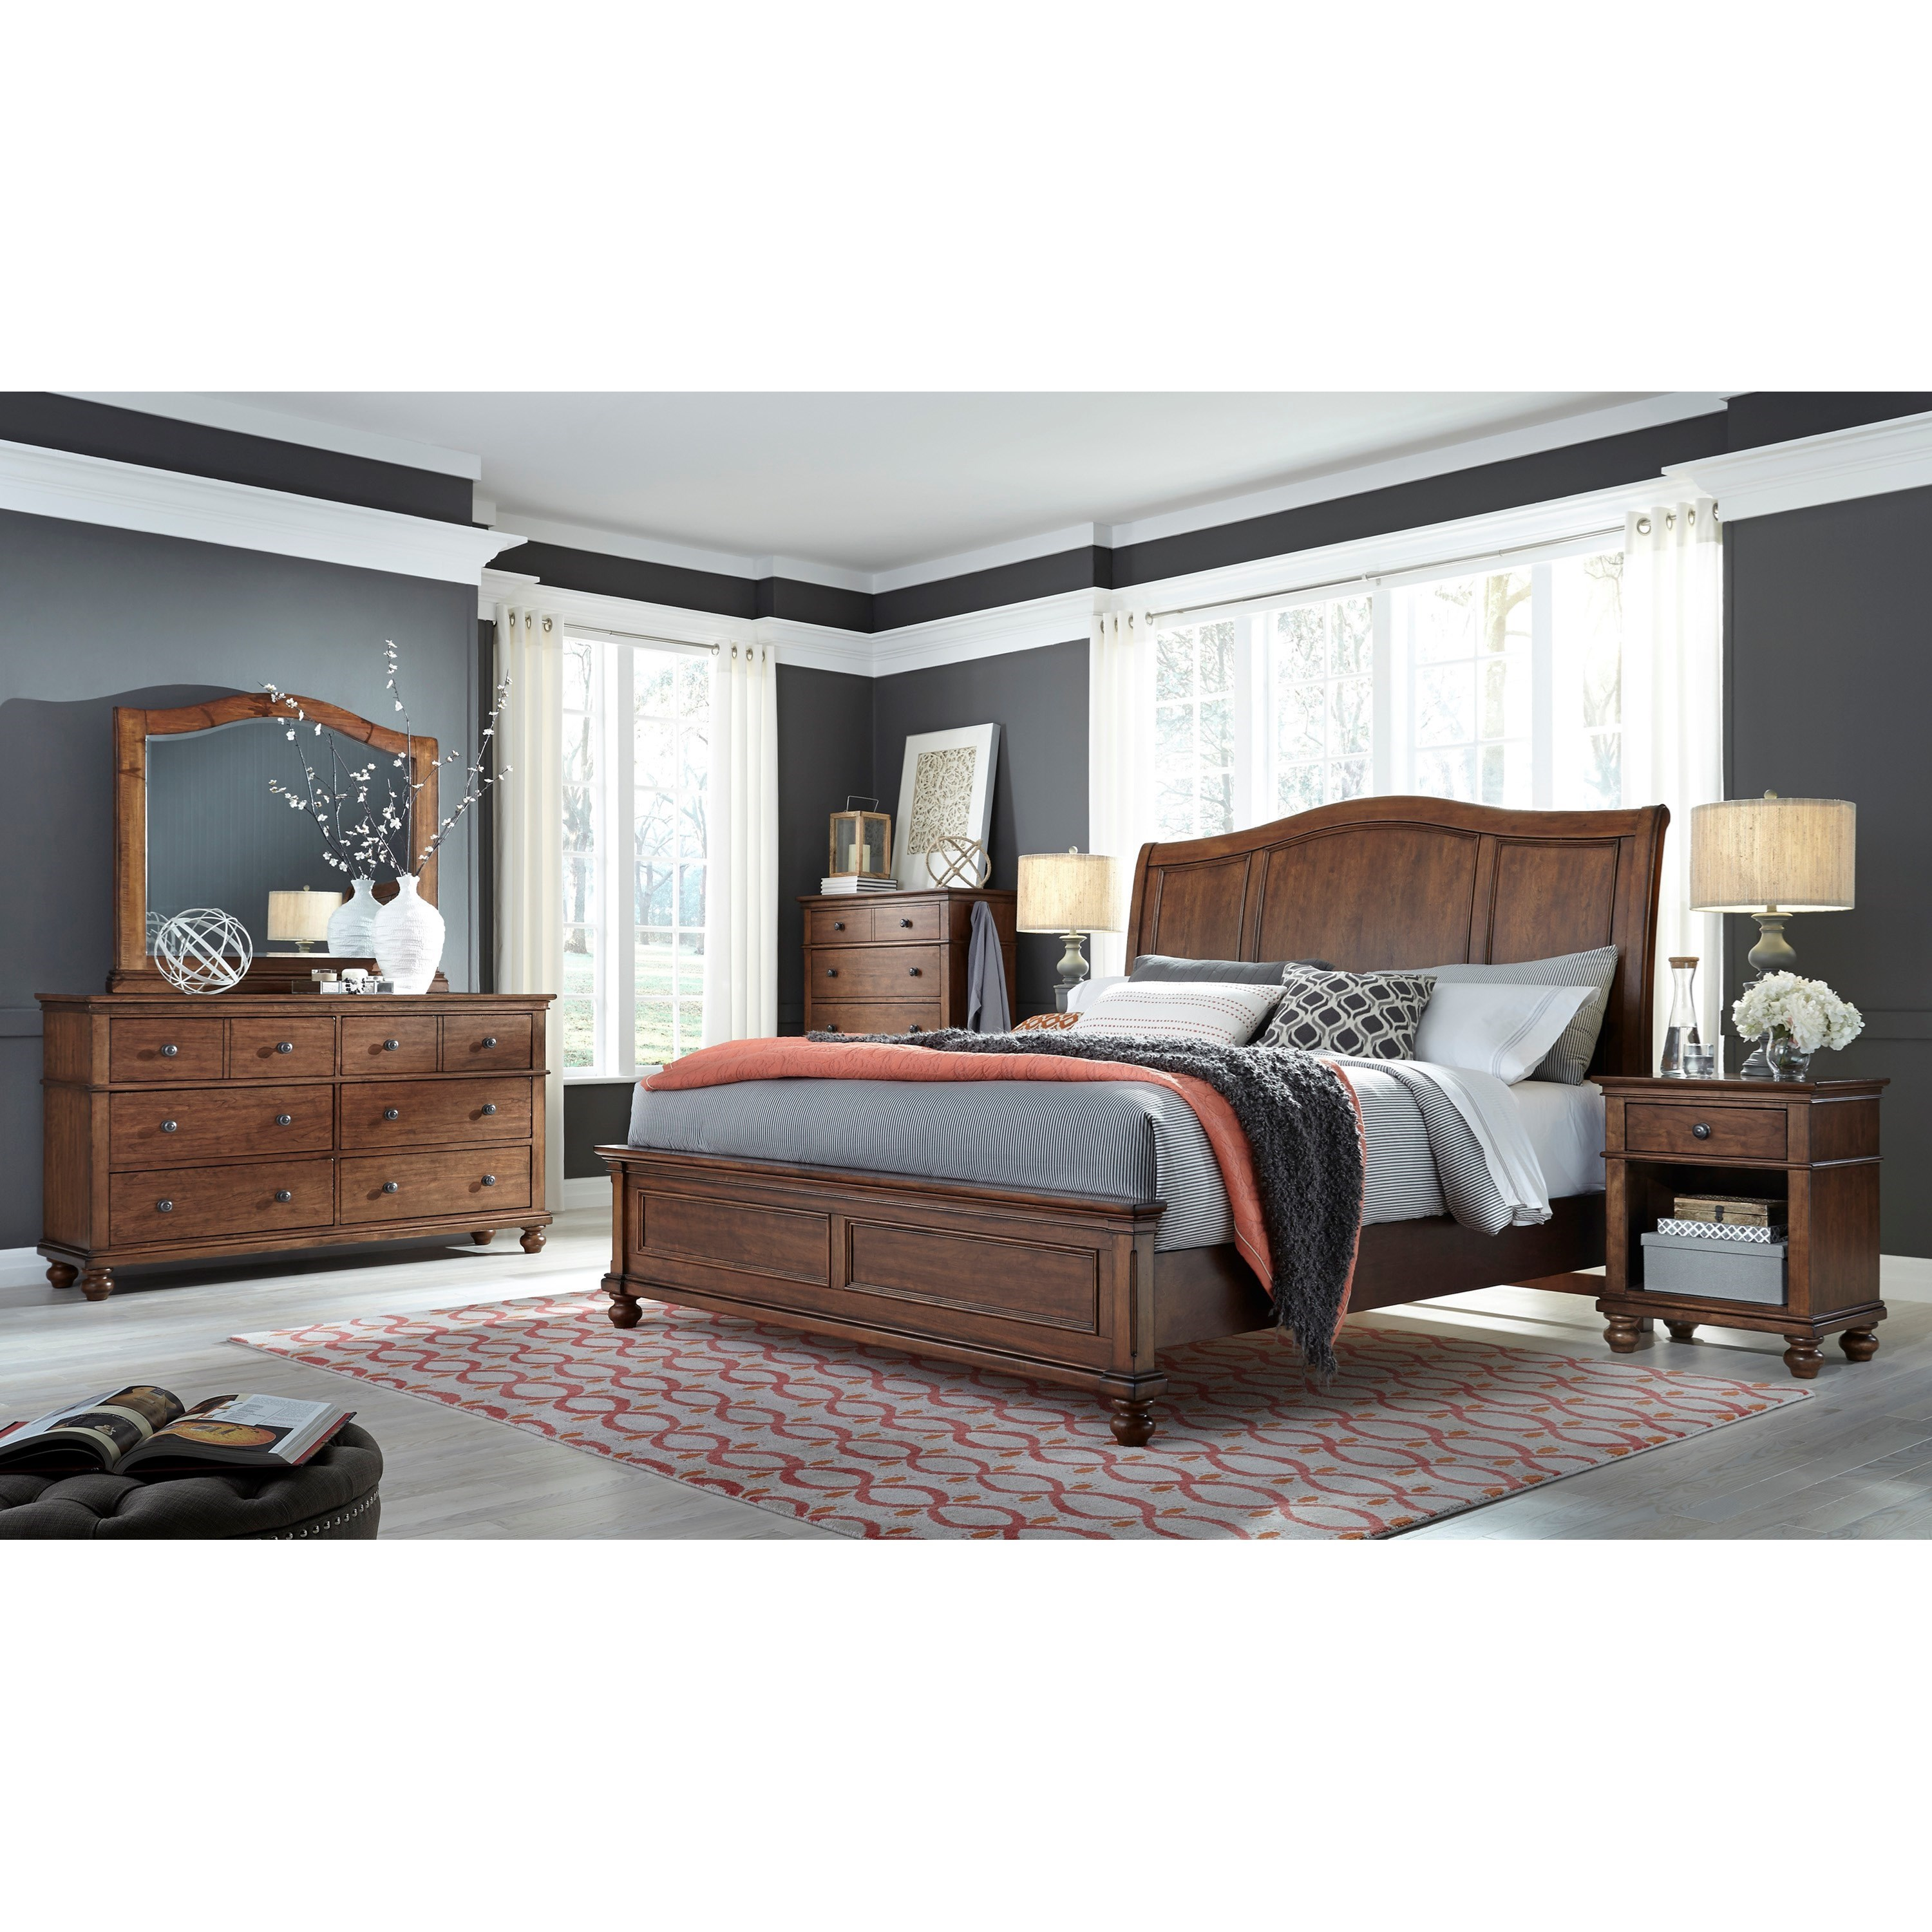 Oxford 5 Piece Queen Bedroom Group by Aspenhome at Walker's Furniture